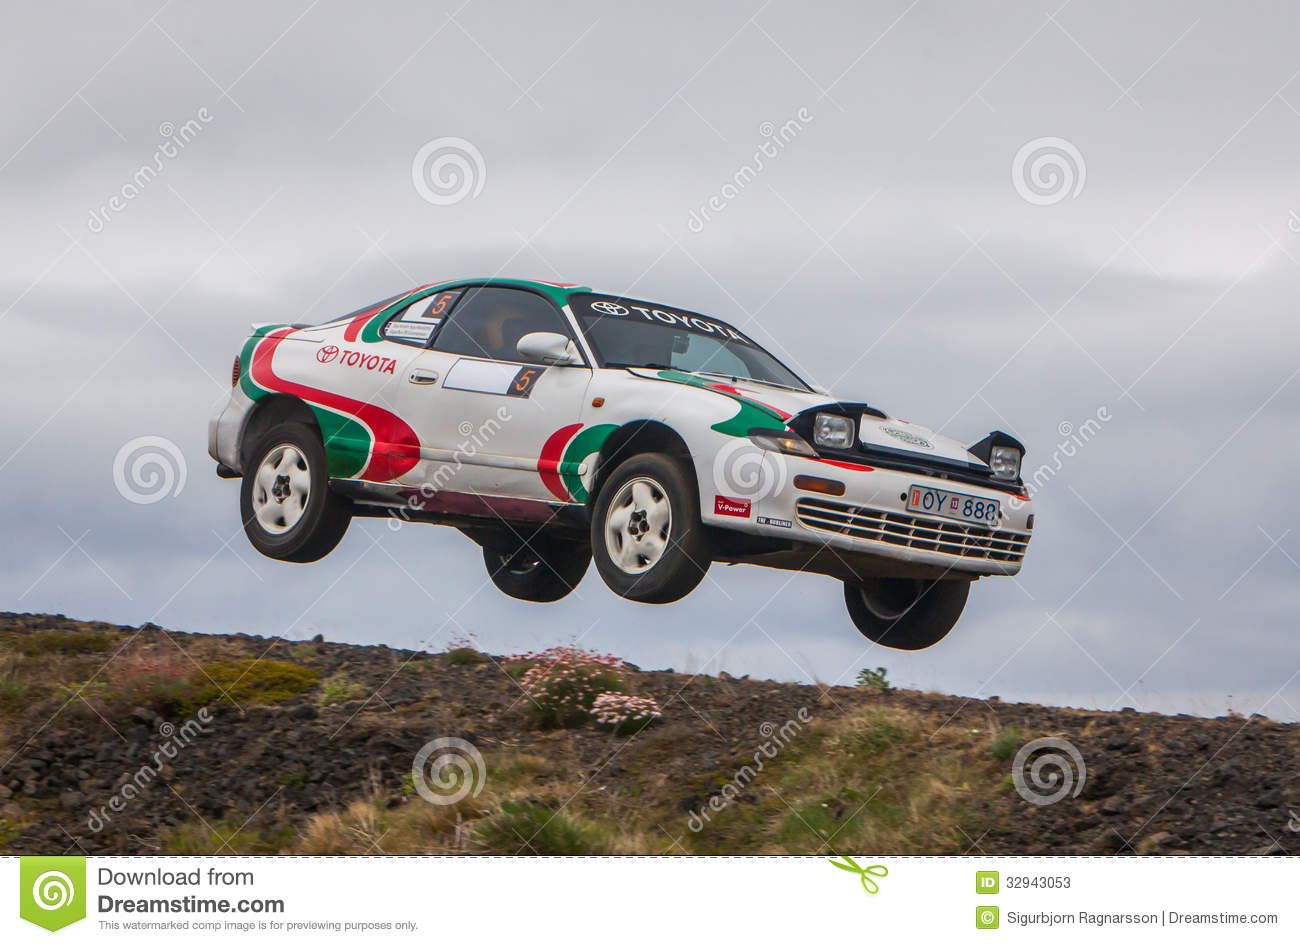 Rally Motor Credit >> Toyota Celica Rallycar Editorial Stock Photo - Image: 32943053